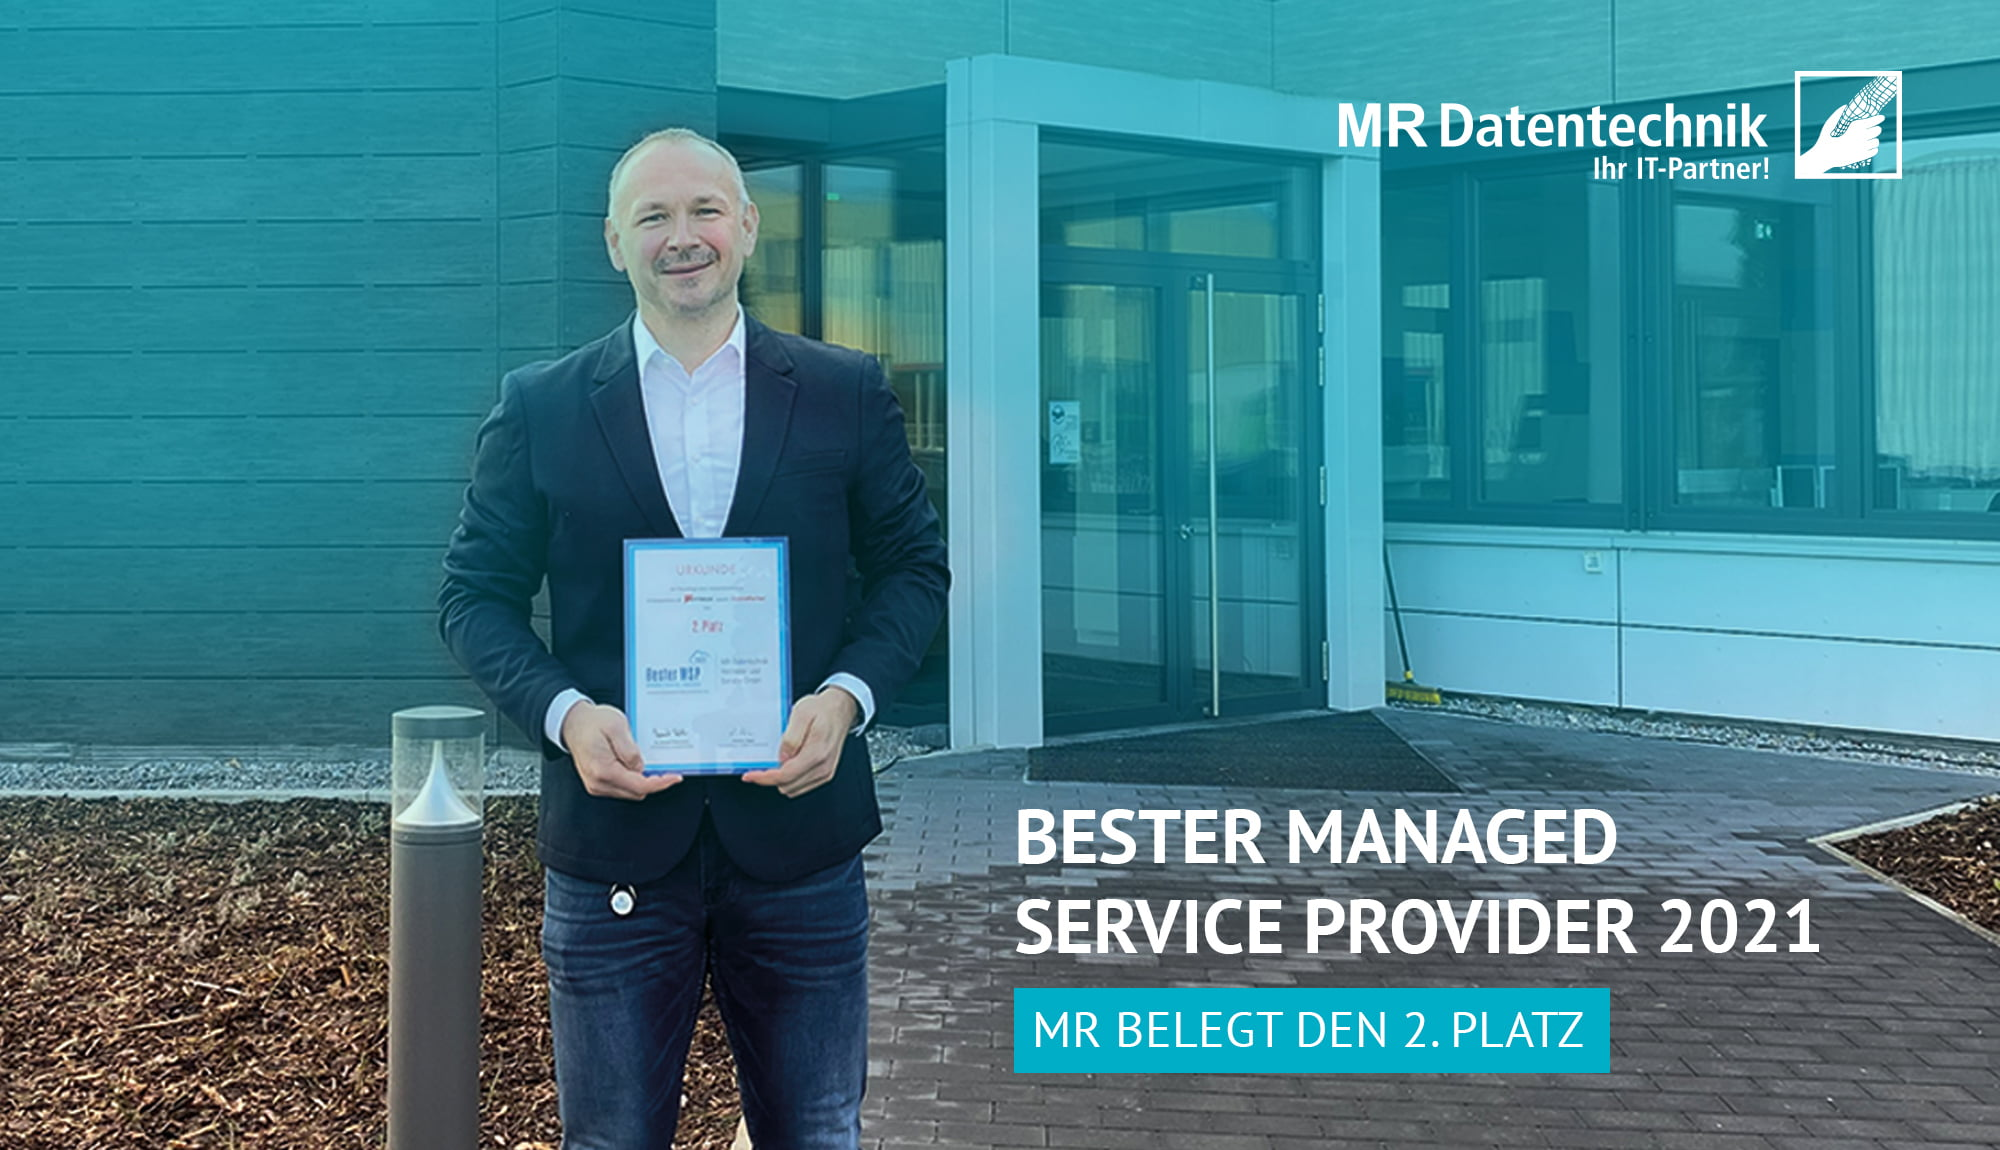 MR Datentechnik Beitragsbild Bester Managed Service Provider 2021